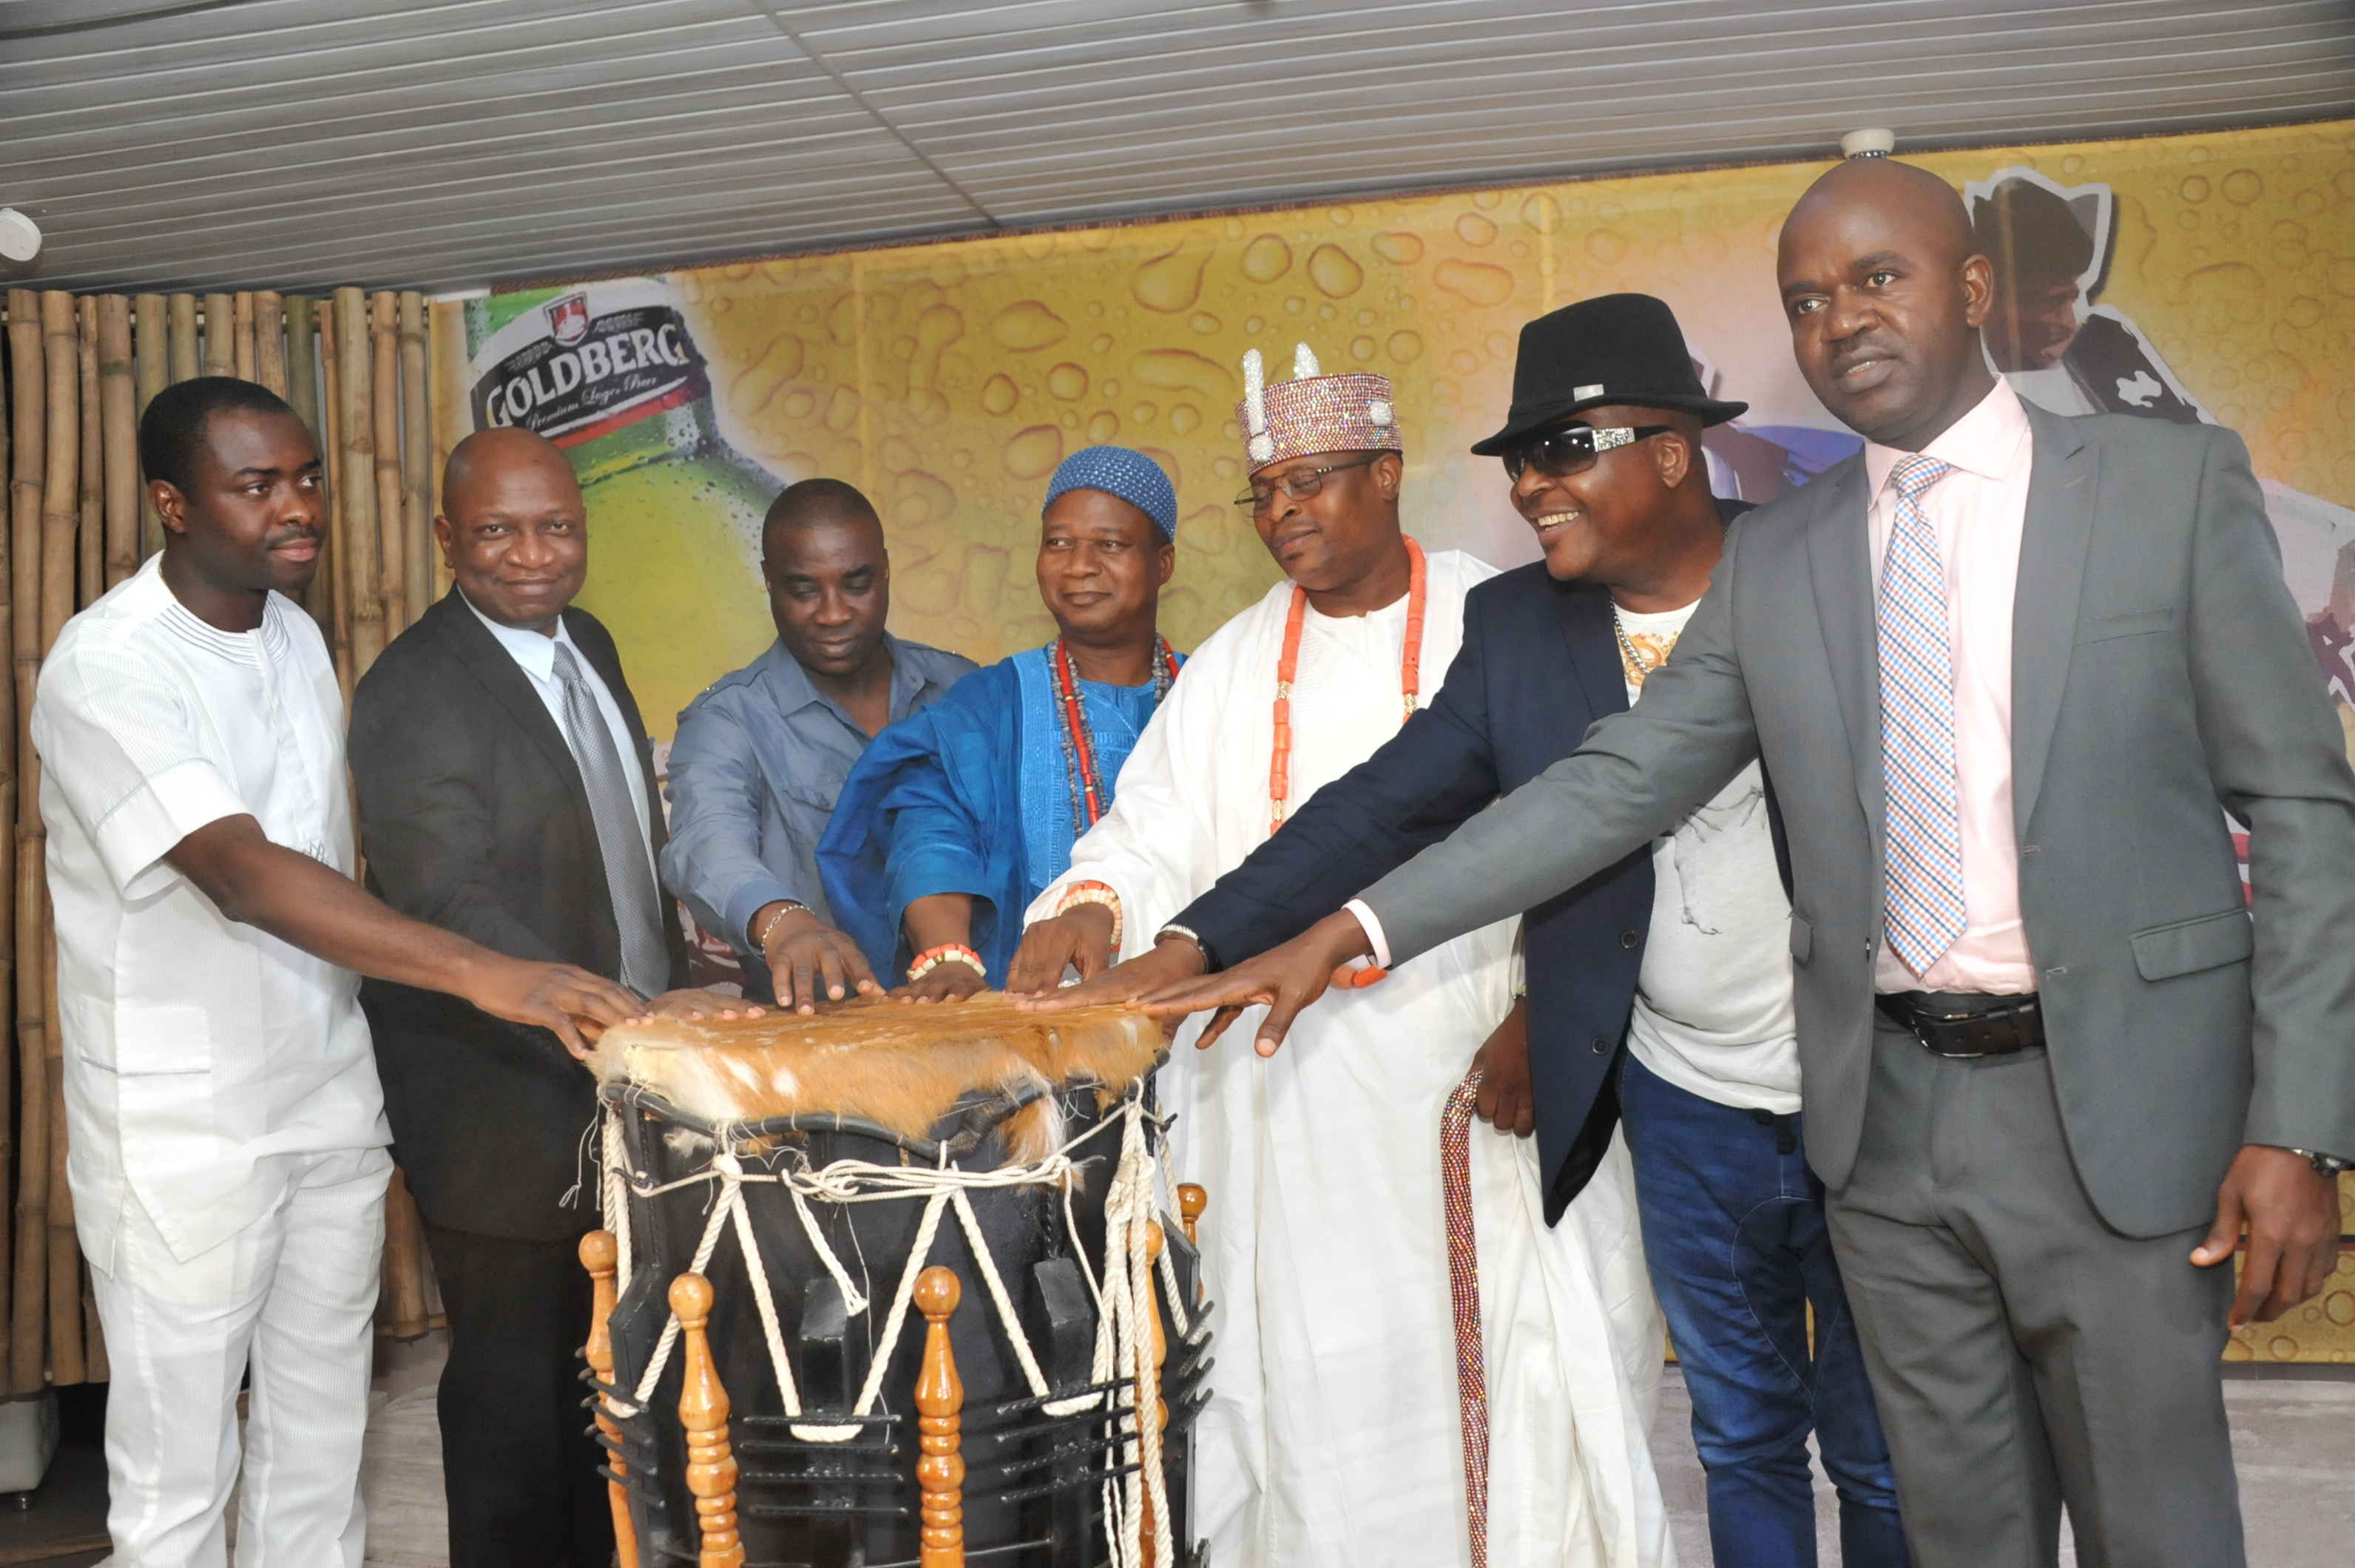 FROM LEFT TO RIGHT: Mr. Funso Ayeni, Senior Brand Manager, Regional Mainstream Brands, Nigerian Breweries; Patrick Olowokere, Corporate Communications/Brands Manager, Nigerian Breweries; King Wasiu Ayinde Marshall, a prominent Fuji Musician; His Royal Highness Oba Babatunde Adetokunbo Awosunle; His Royal Highness, Oba Adebinni  Asoya, who represented the Ooni of Ife, Oba Babatunde Enitan Ogunwusi; Sir Shina Peters, a prominent Juju Musician and Mr. Emma Agu, Portfolio Manager, Regional Mainstream and Stout Brand, Nigerian Breweries at the first Goldberg music roundtable in Lagos on Wednesday.